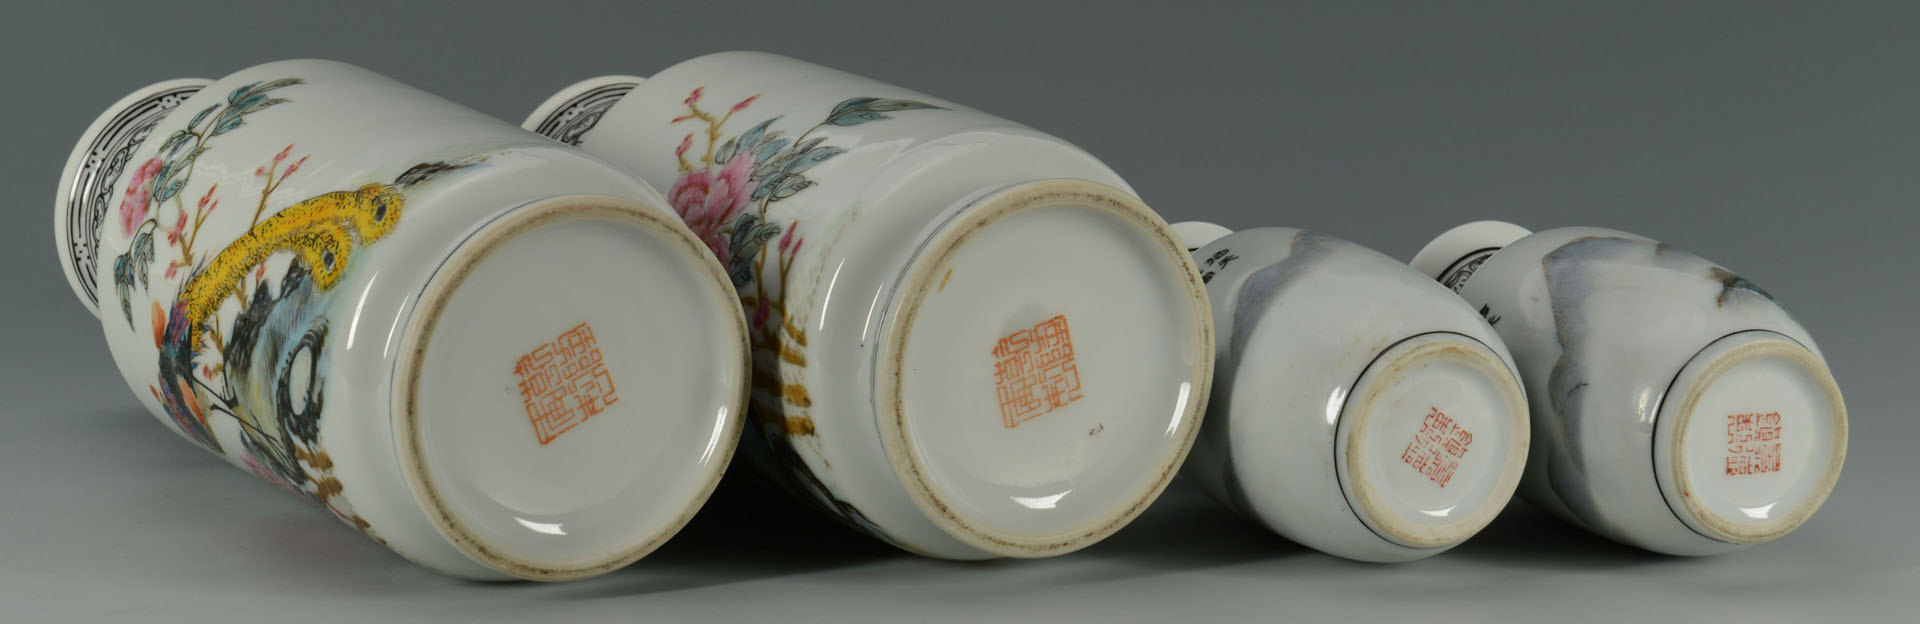 Lot 3088298: 5 Asian Porcelain and Decorative Items